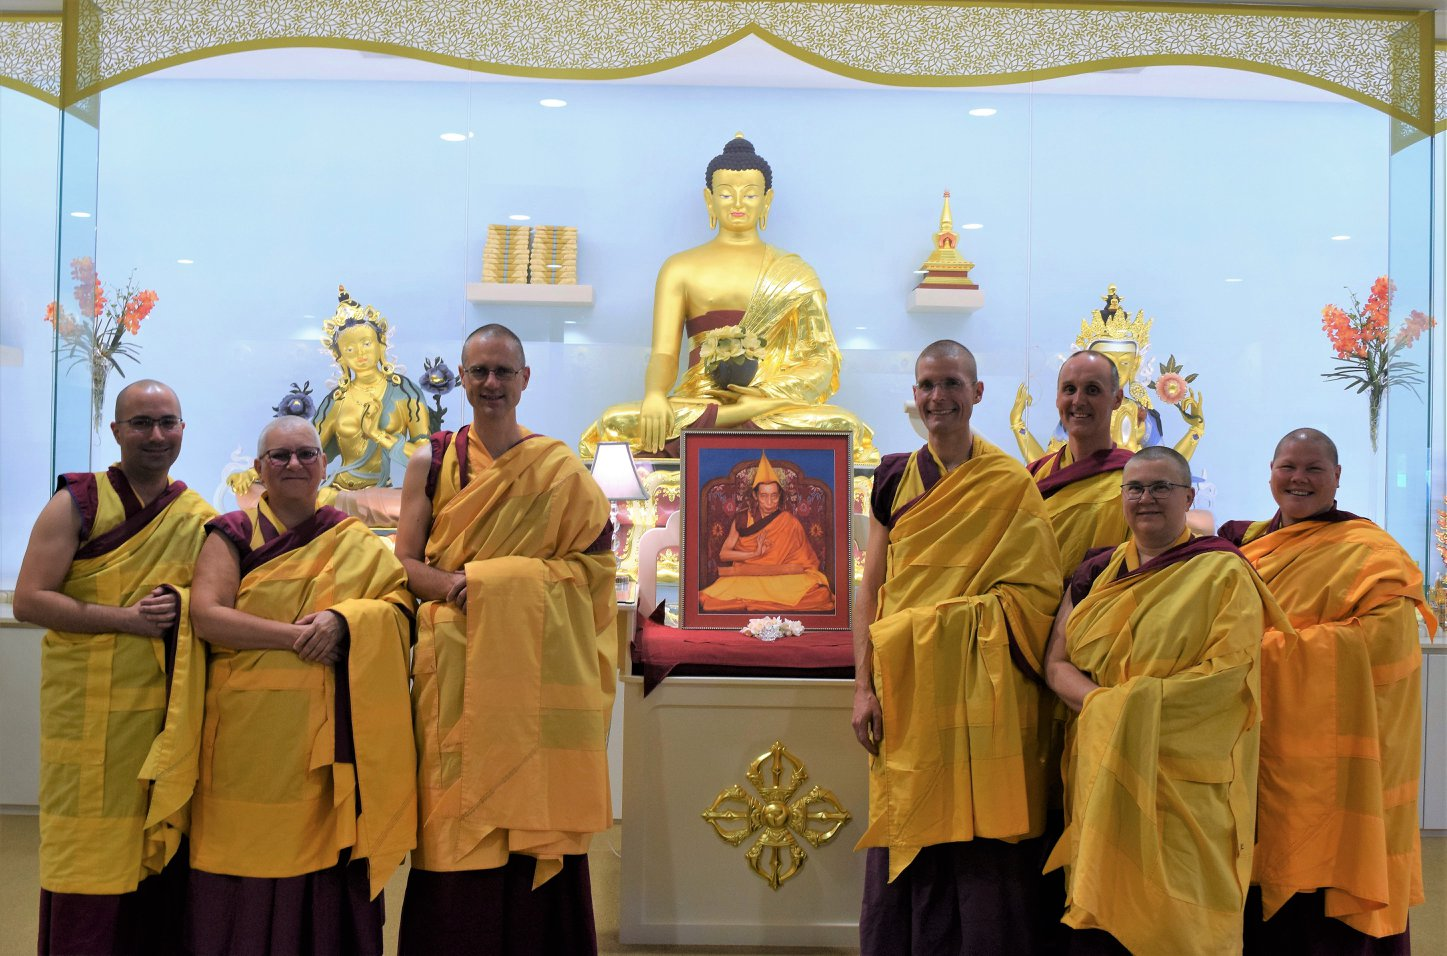 Buddhist Monks & Nuns at the World Peace Temple